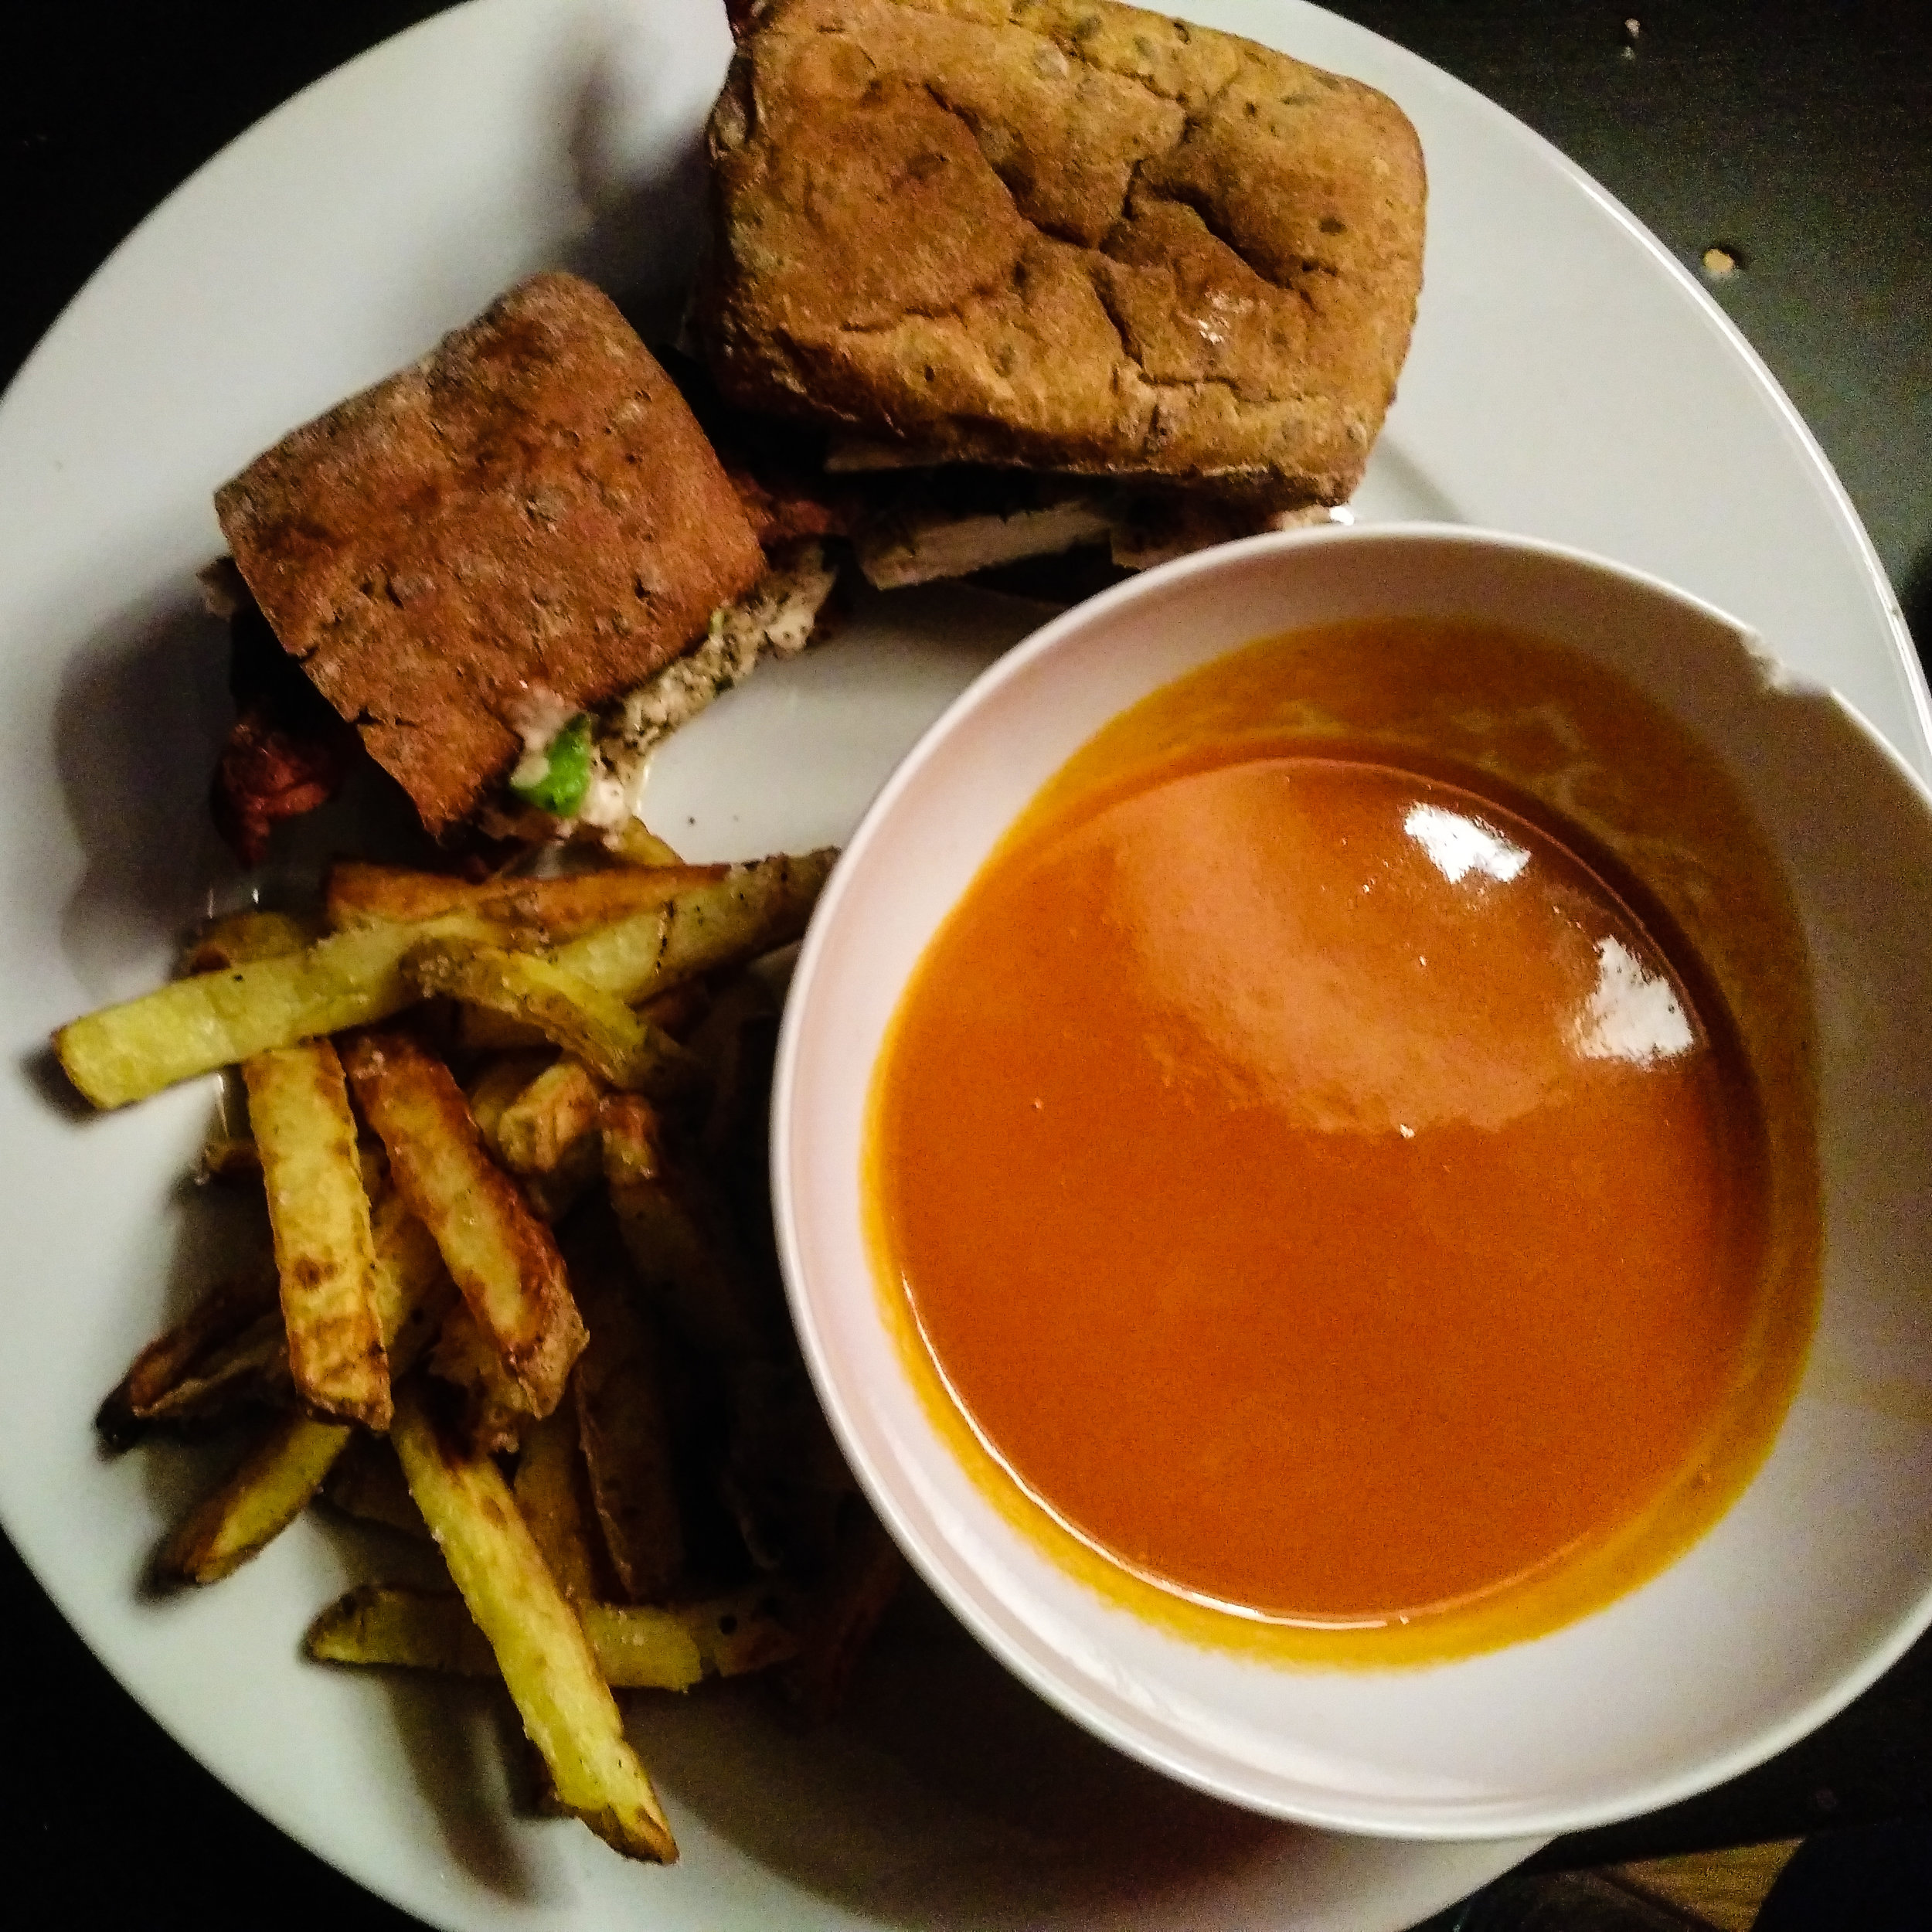 Fantastic dinner of chicken, avocado, bacon sandwich on gluten-free bread with a chipotle mayo. Side of homemade oven cooked fries and a organic tomato soup (which I was too full to eat).